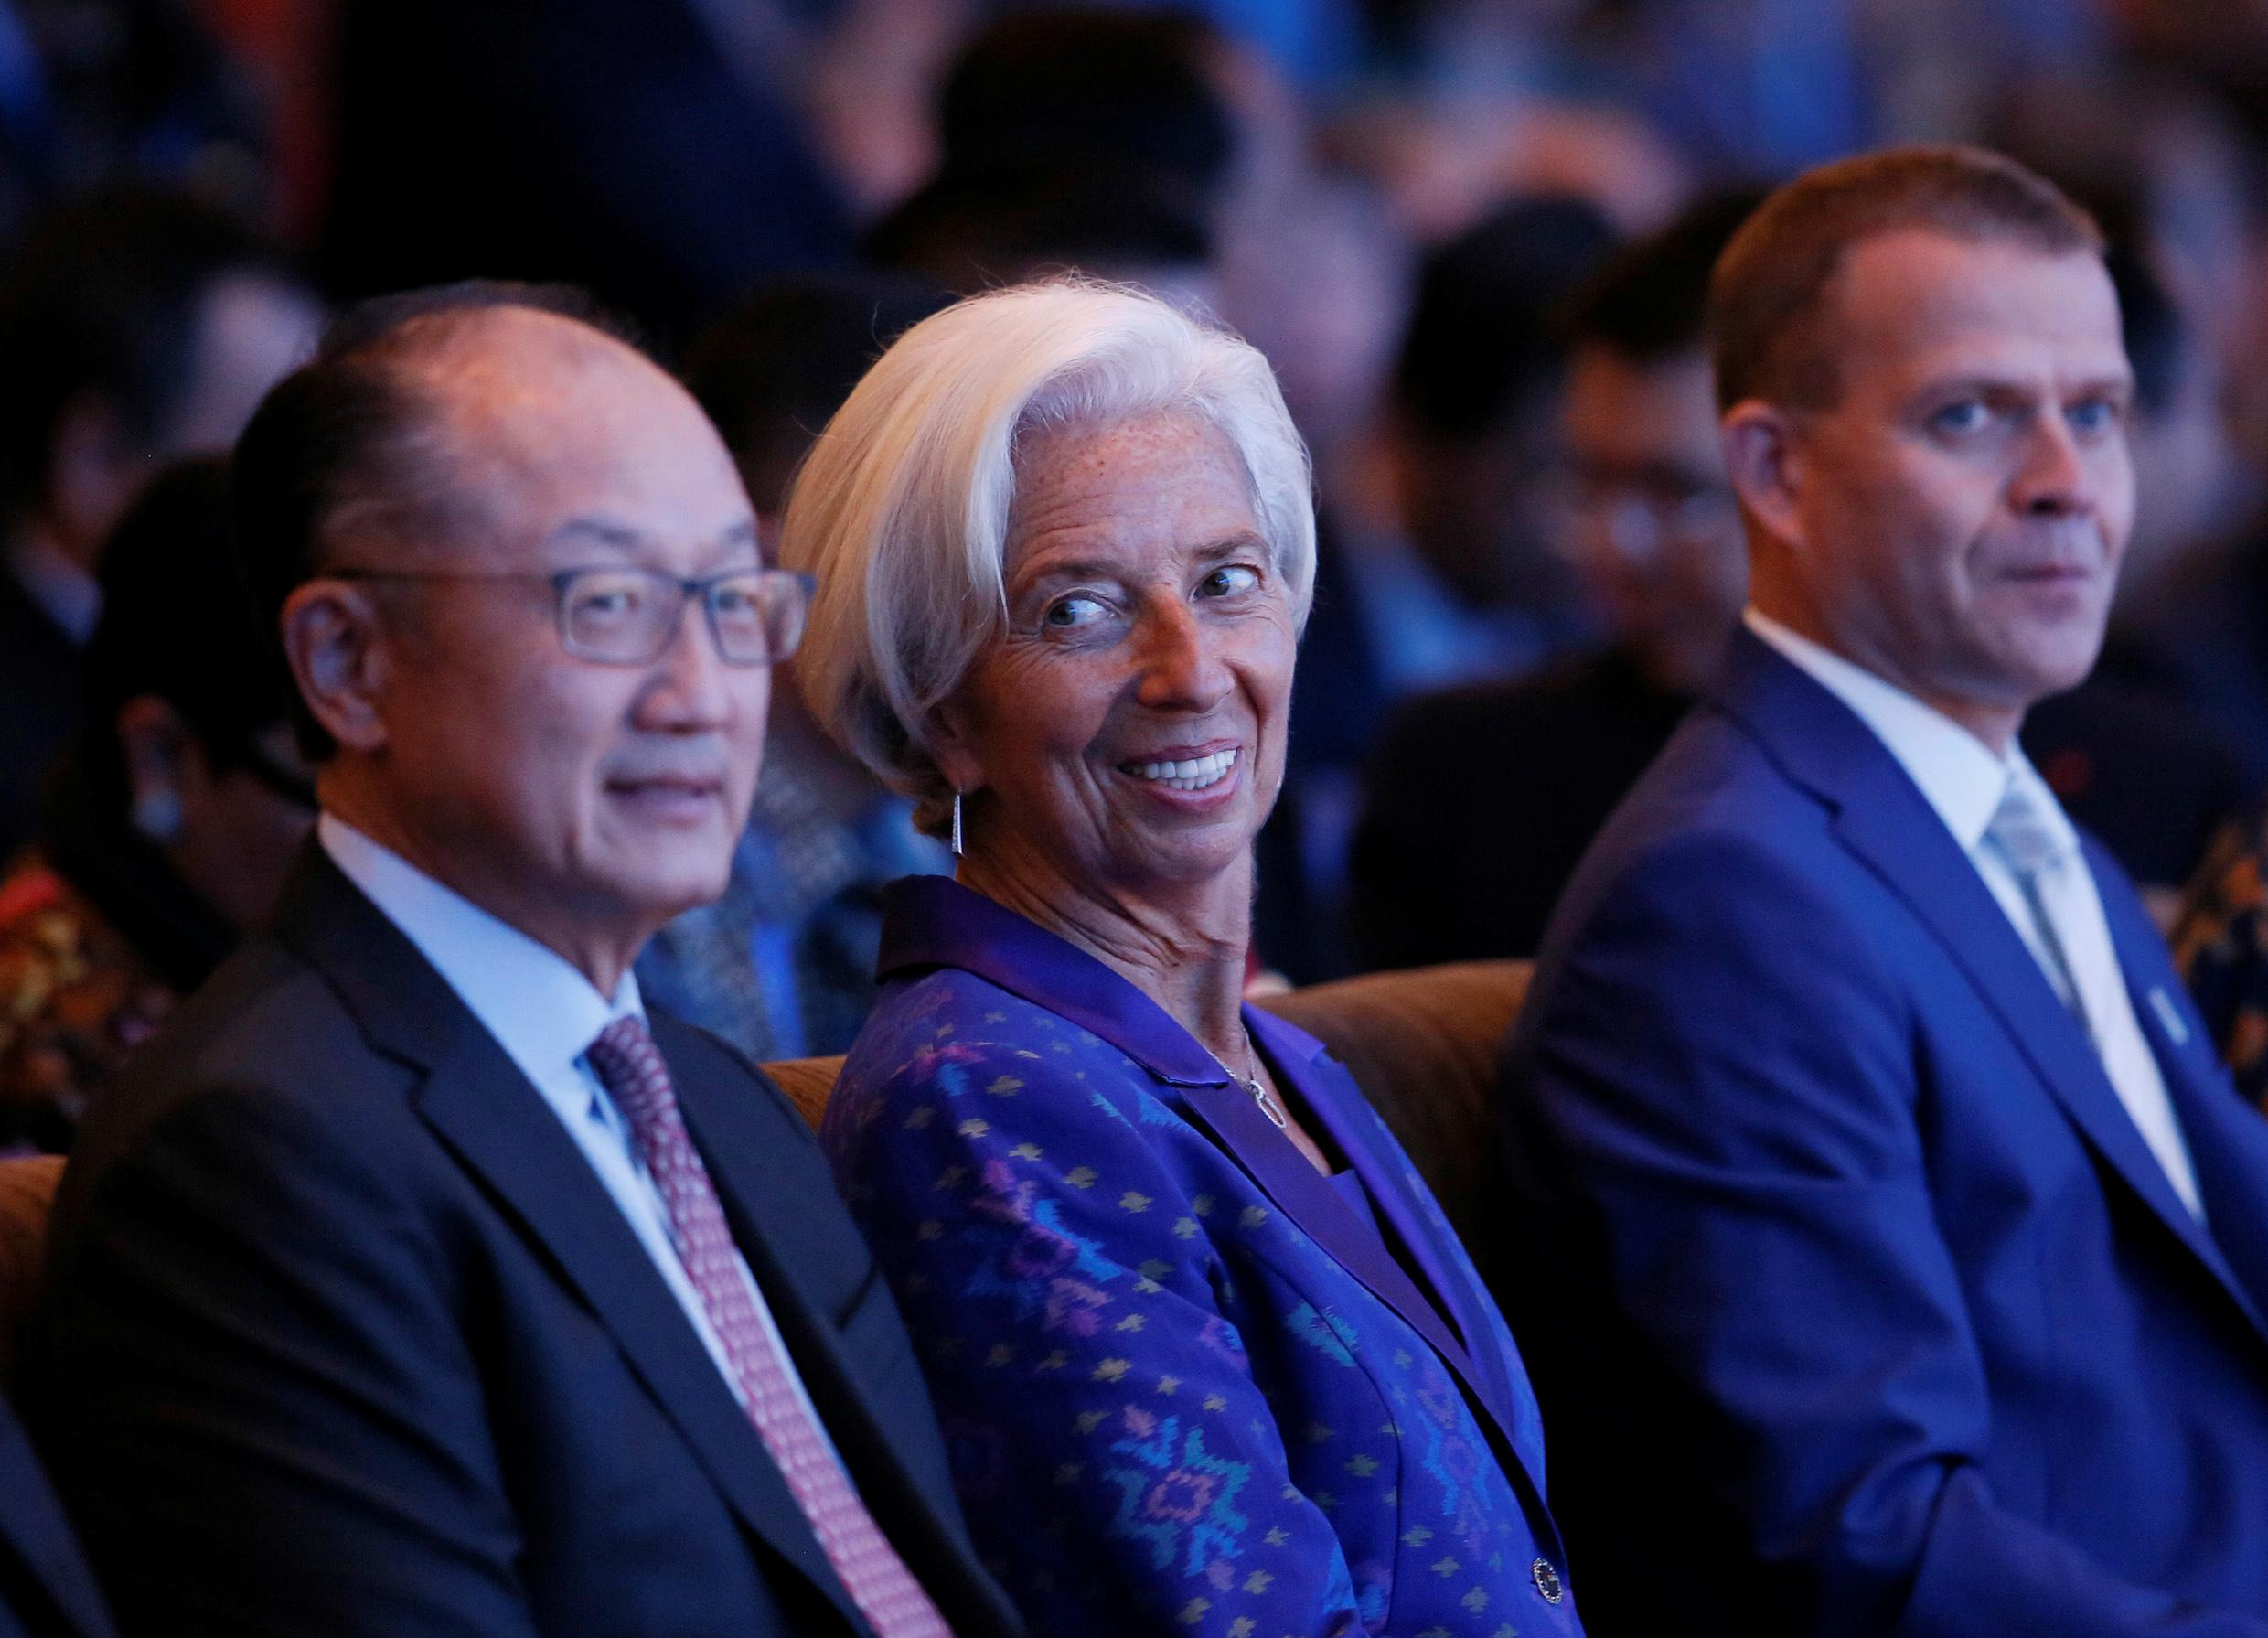 (L-R) World Bank President Jim Yong Kim, IMF Managing Director Christine Lagarde and Finland Finance Minister Petteri Orpo attend a plenary session at International Monetary Fund - World Bank Annual Meeting 2018 in Nusa Dua, Bali, Indonesia, October 12, 2018. Johannes P. Christo